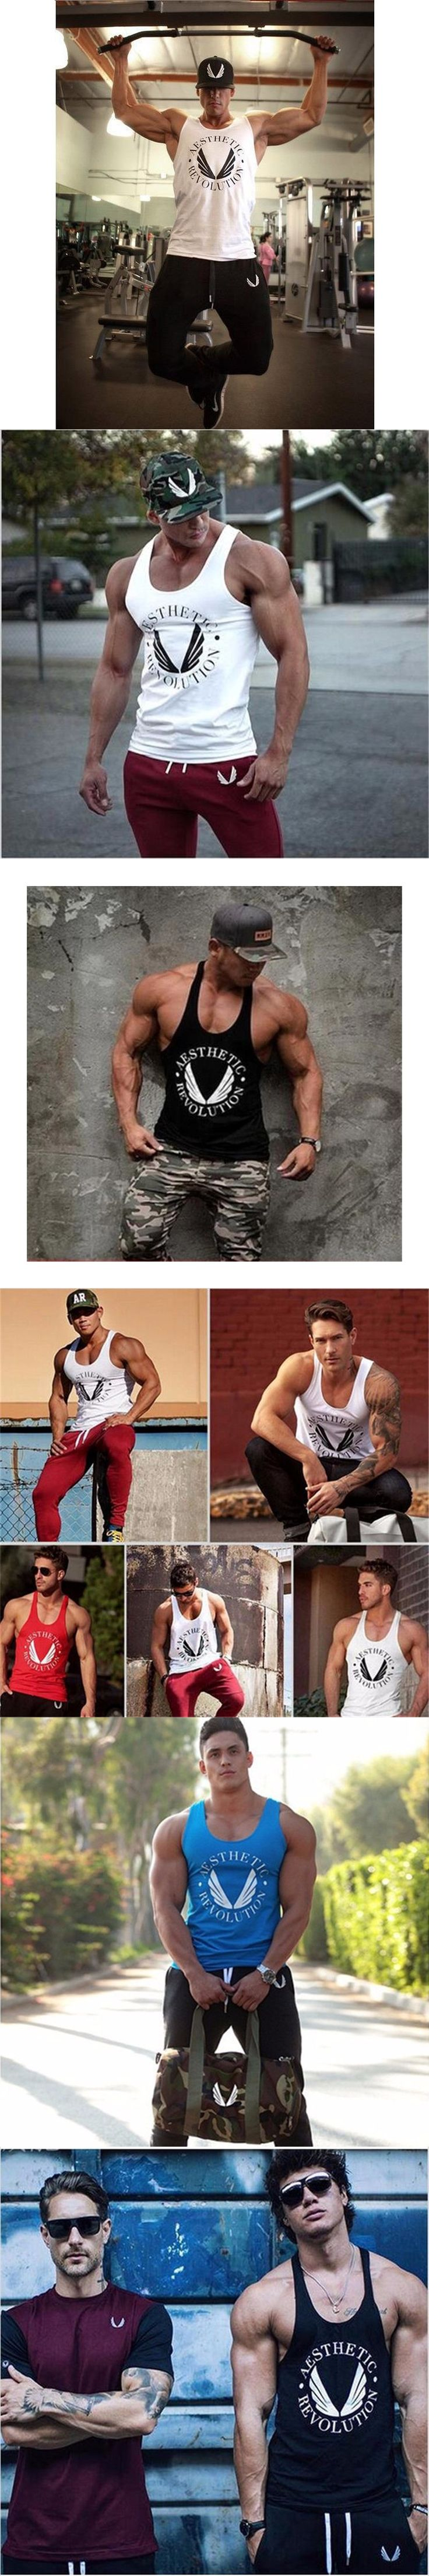 2017 Singlets Mens Tank Tops Shirt,Bodybuilding Equipment Fitness Men's Golds Stringer Tank Top Brand Clothes